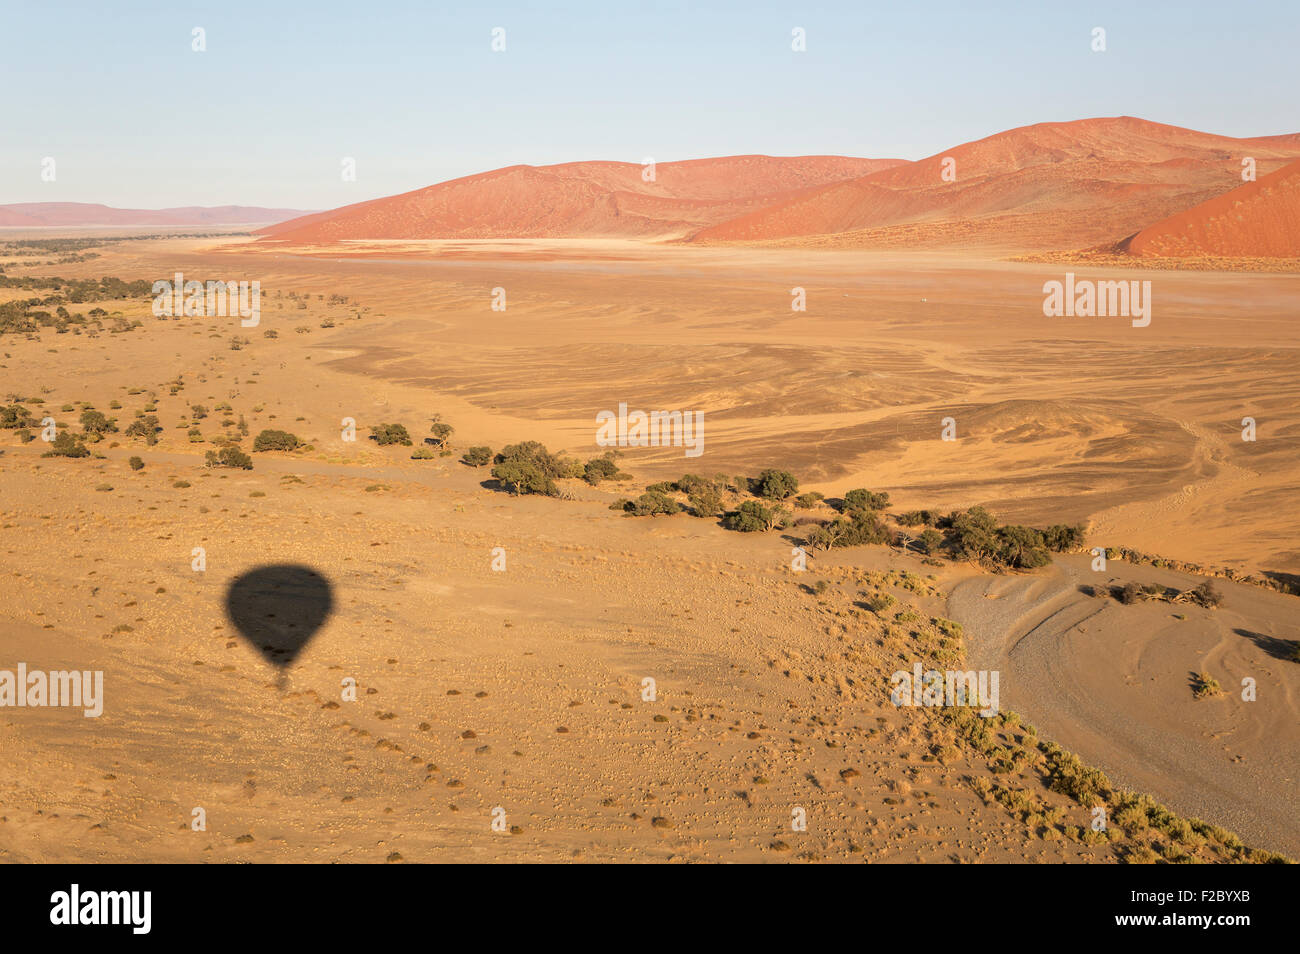 Shadow of the hot-air balloon over an arid plain and the dry riverbed of the Tsauchab river at the edge of the Namib - Stock Image